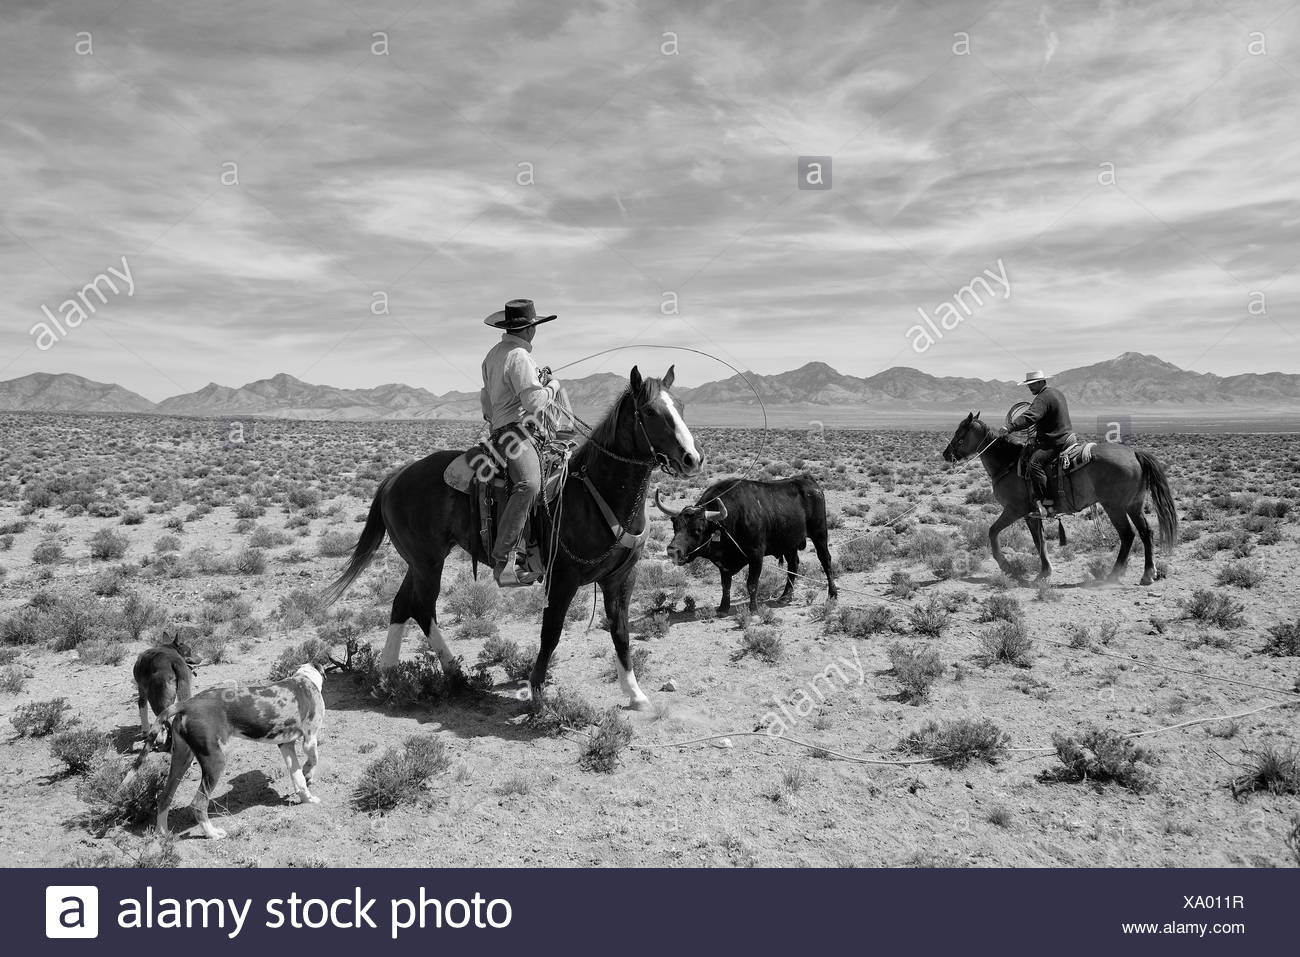 USA, United States, America, Nevada, cowboys, cowboy, bull, wrestling, horses, american west, western, lasso, lariat, work, work - Stock Image